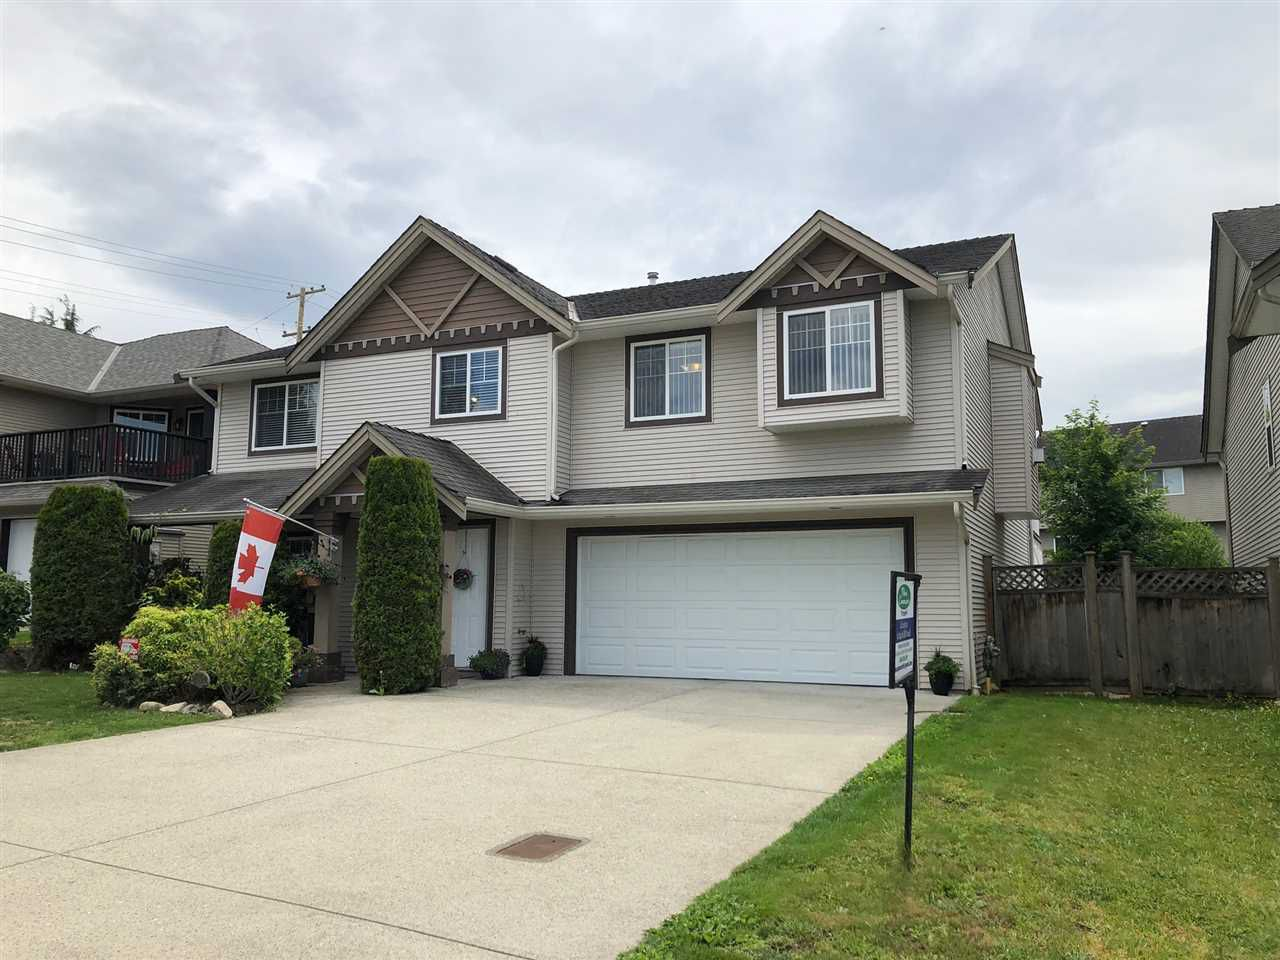 Main Photo: 35198 LABURNUM Avenue in Abbotsford: Abbotsford East House for sale : MLS®# R2373836